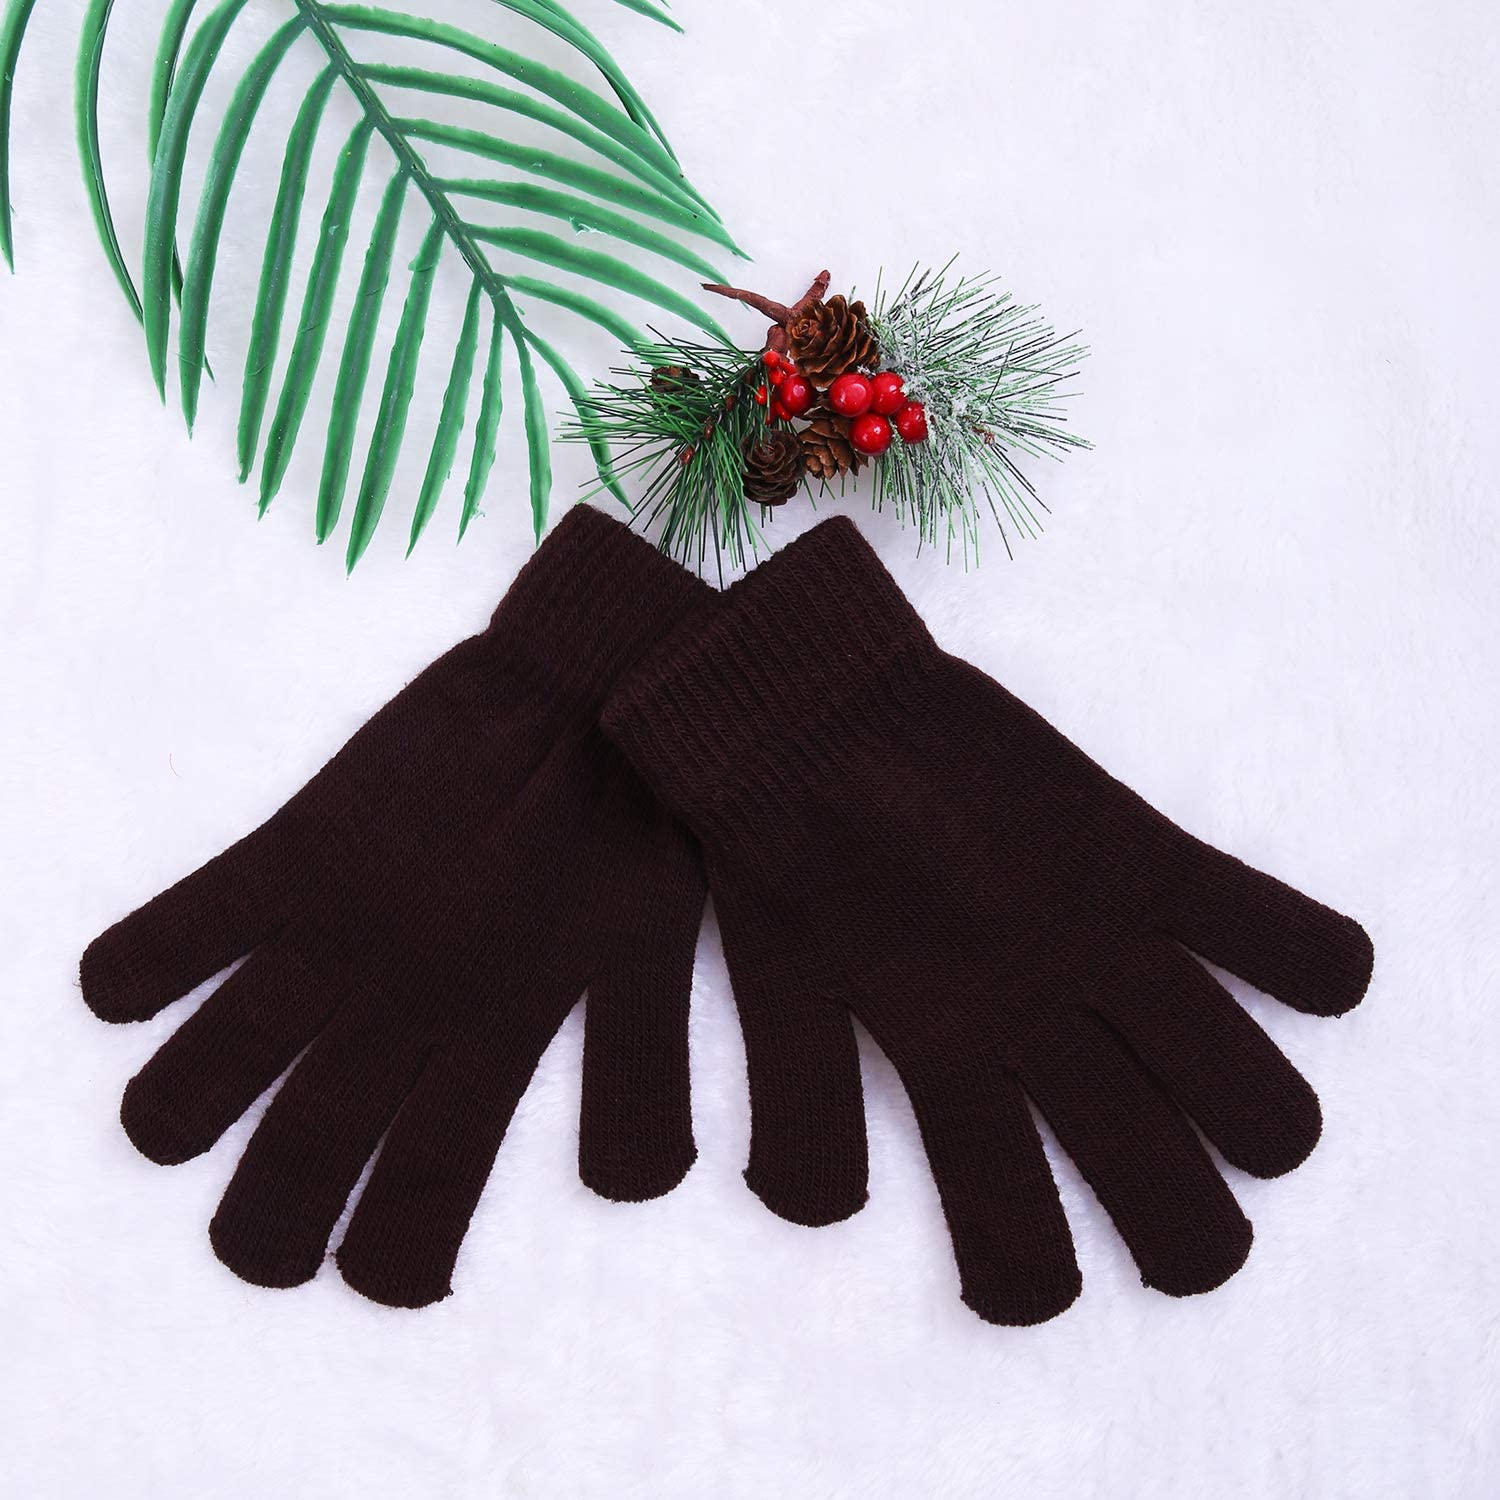 Women or Teens Cooraby 16 Pairs Adult Winter Knitted Magic Gloves Full Fingers Stretchy Warm Gloves for Men